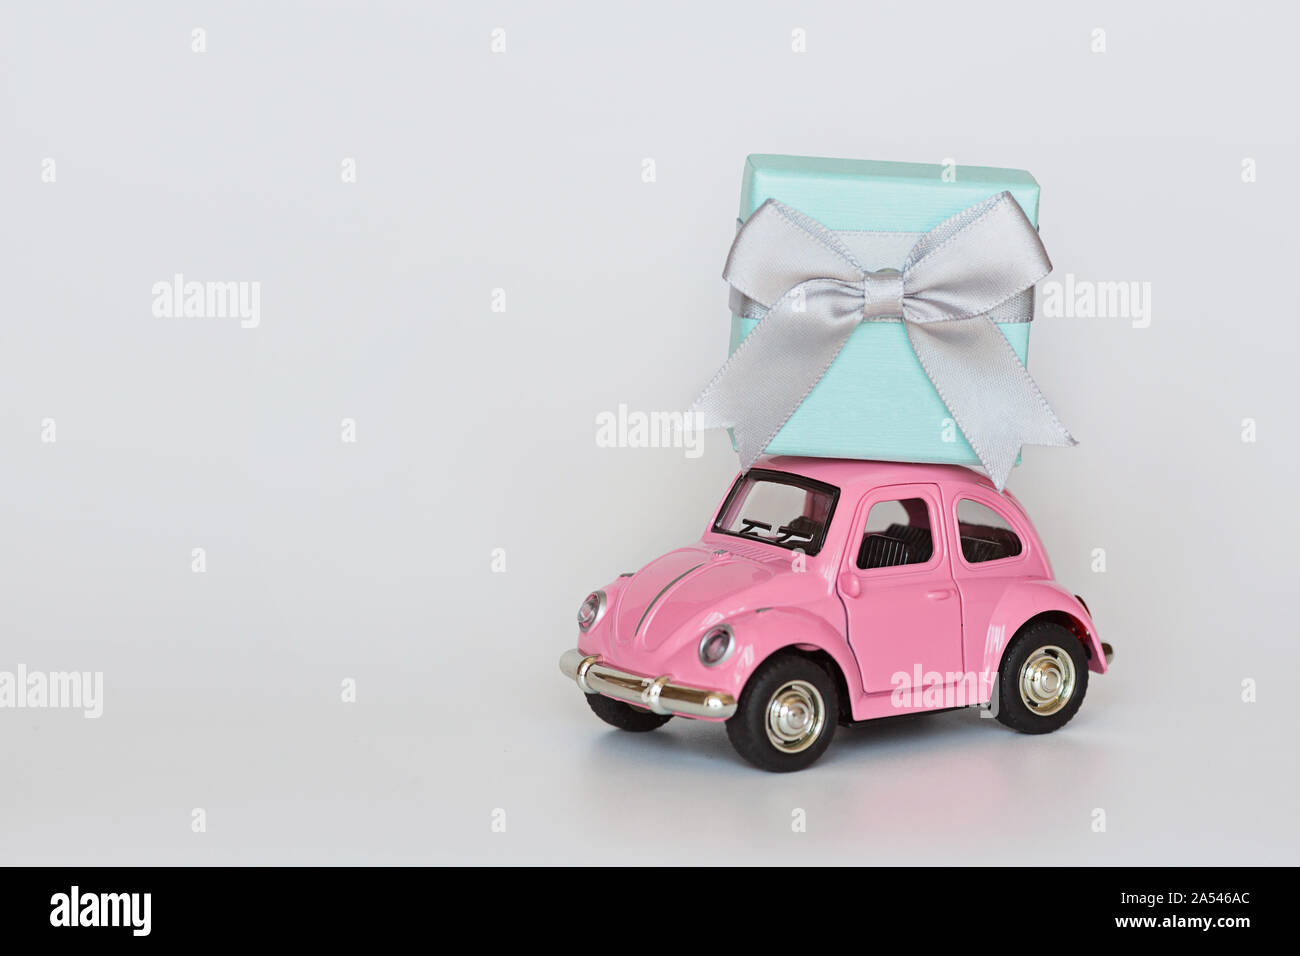 Changxing, China - October 15, 2019: Pink retro toy car delivering gift box on roof on white background. Valentine day February 14, International Stock Photo